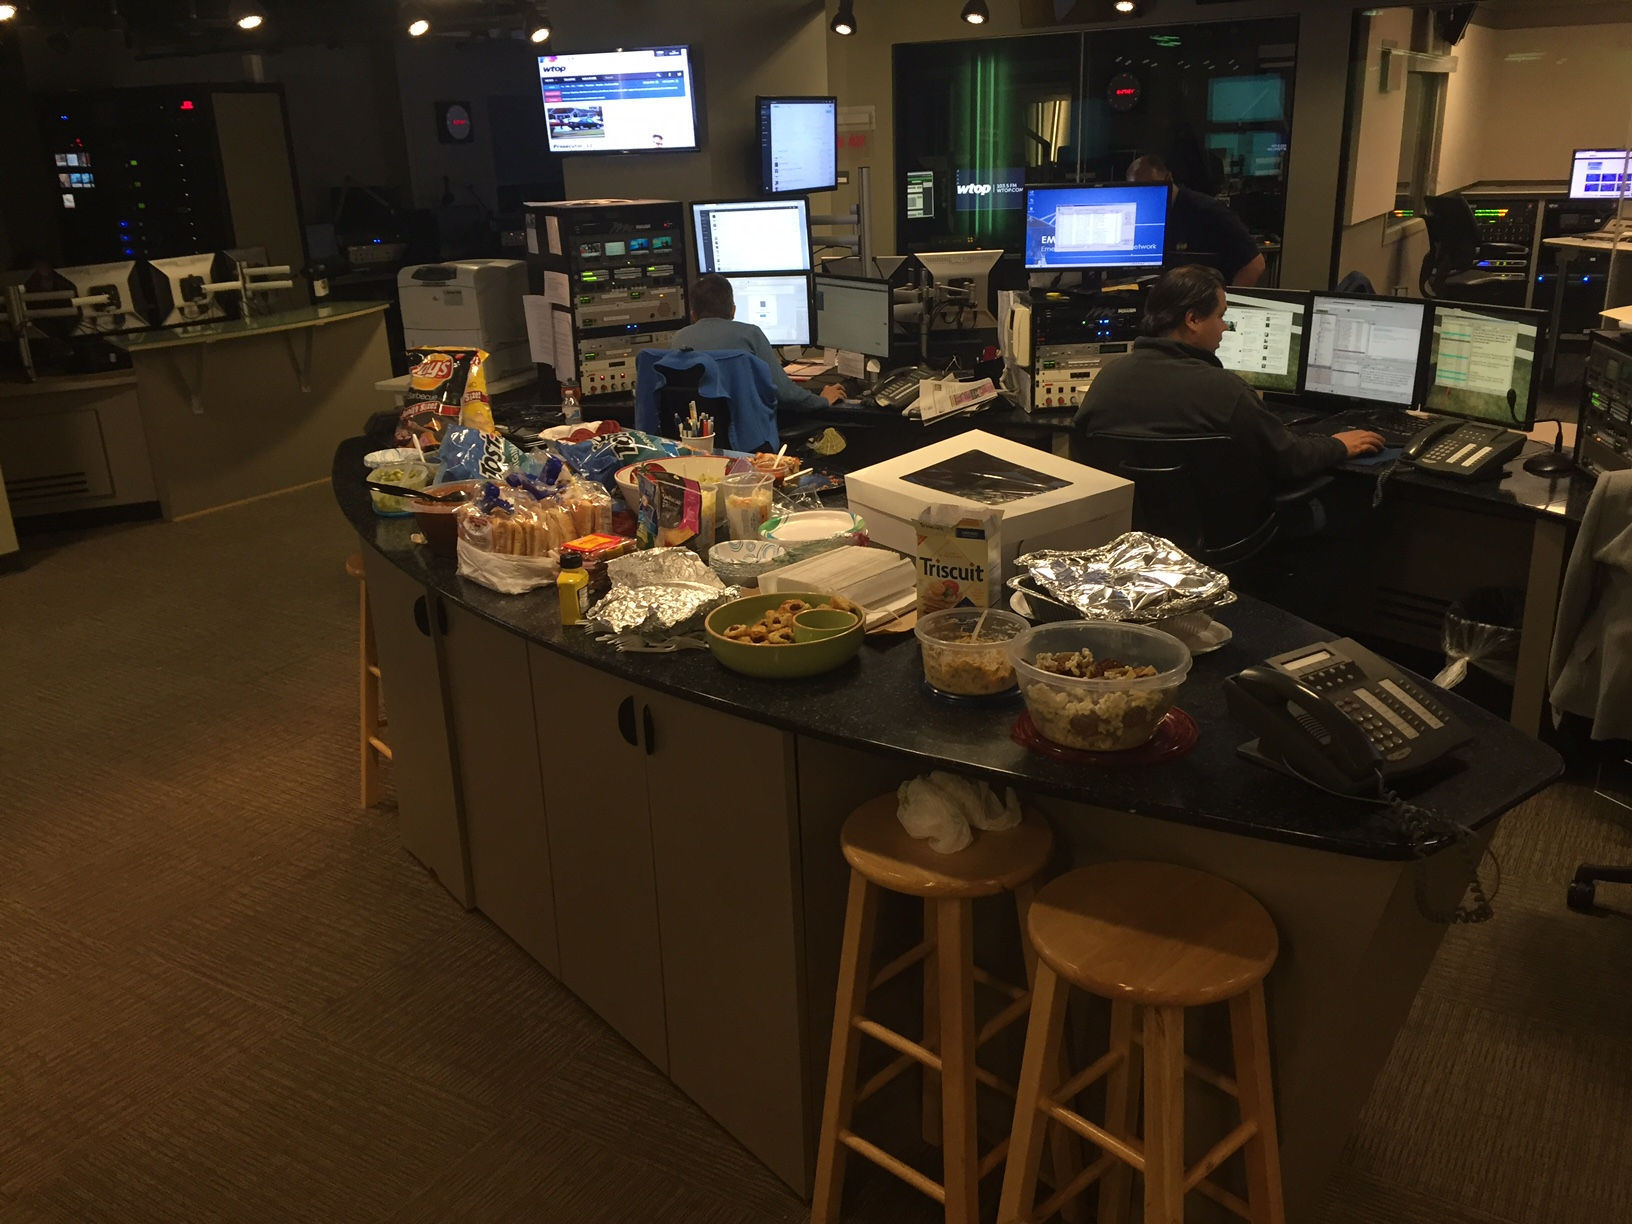 Dig in to the WTOP Super Bowl party spread